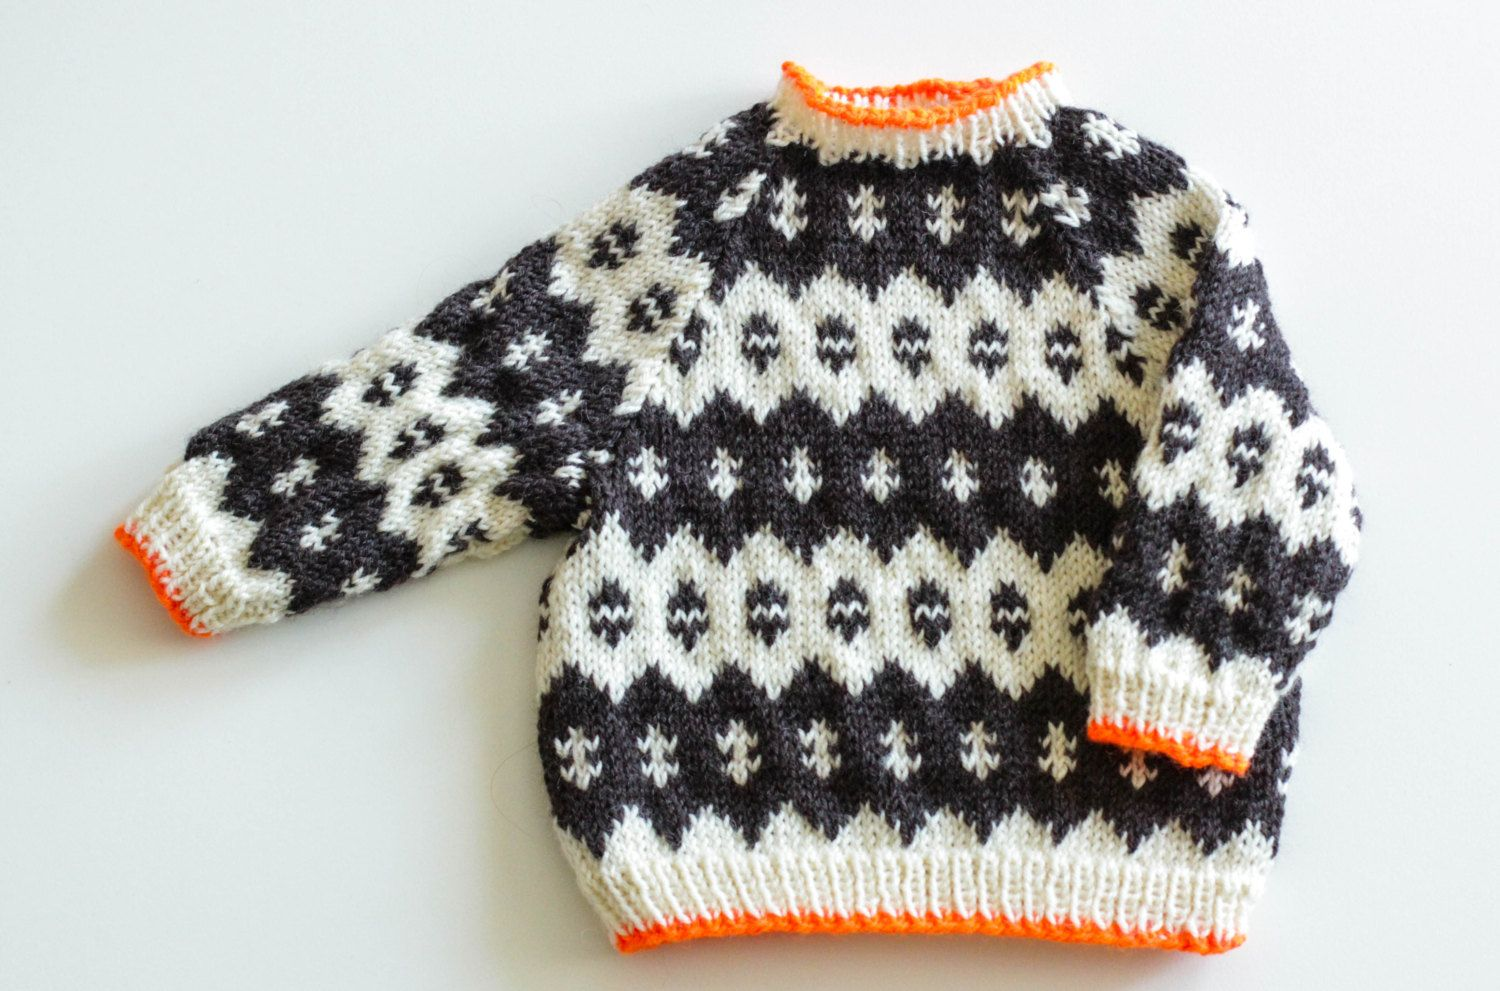 ae0ec8f2 Icelandic baby knit sweater by thebirdyandthebear on Etsy   Projects ...